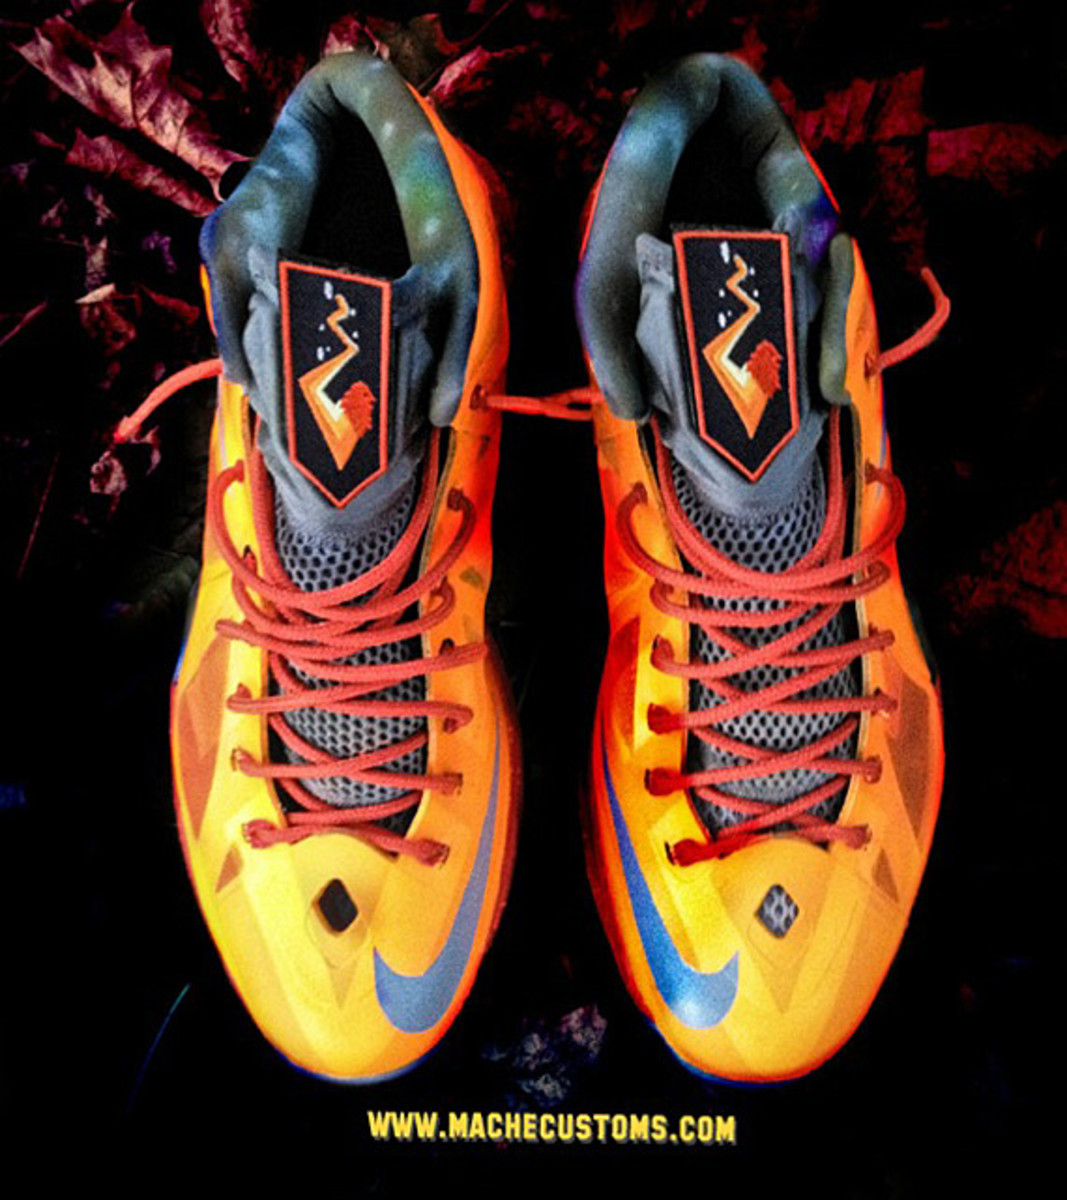 nike-lebron-x-big-bang-customs-mache-03